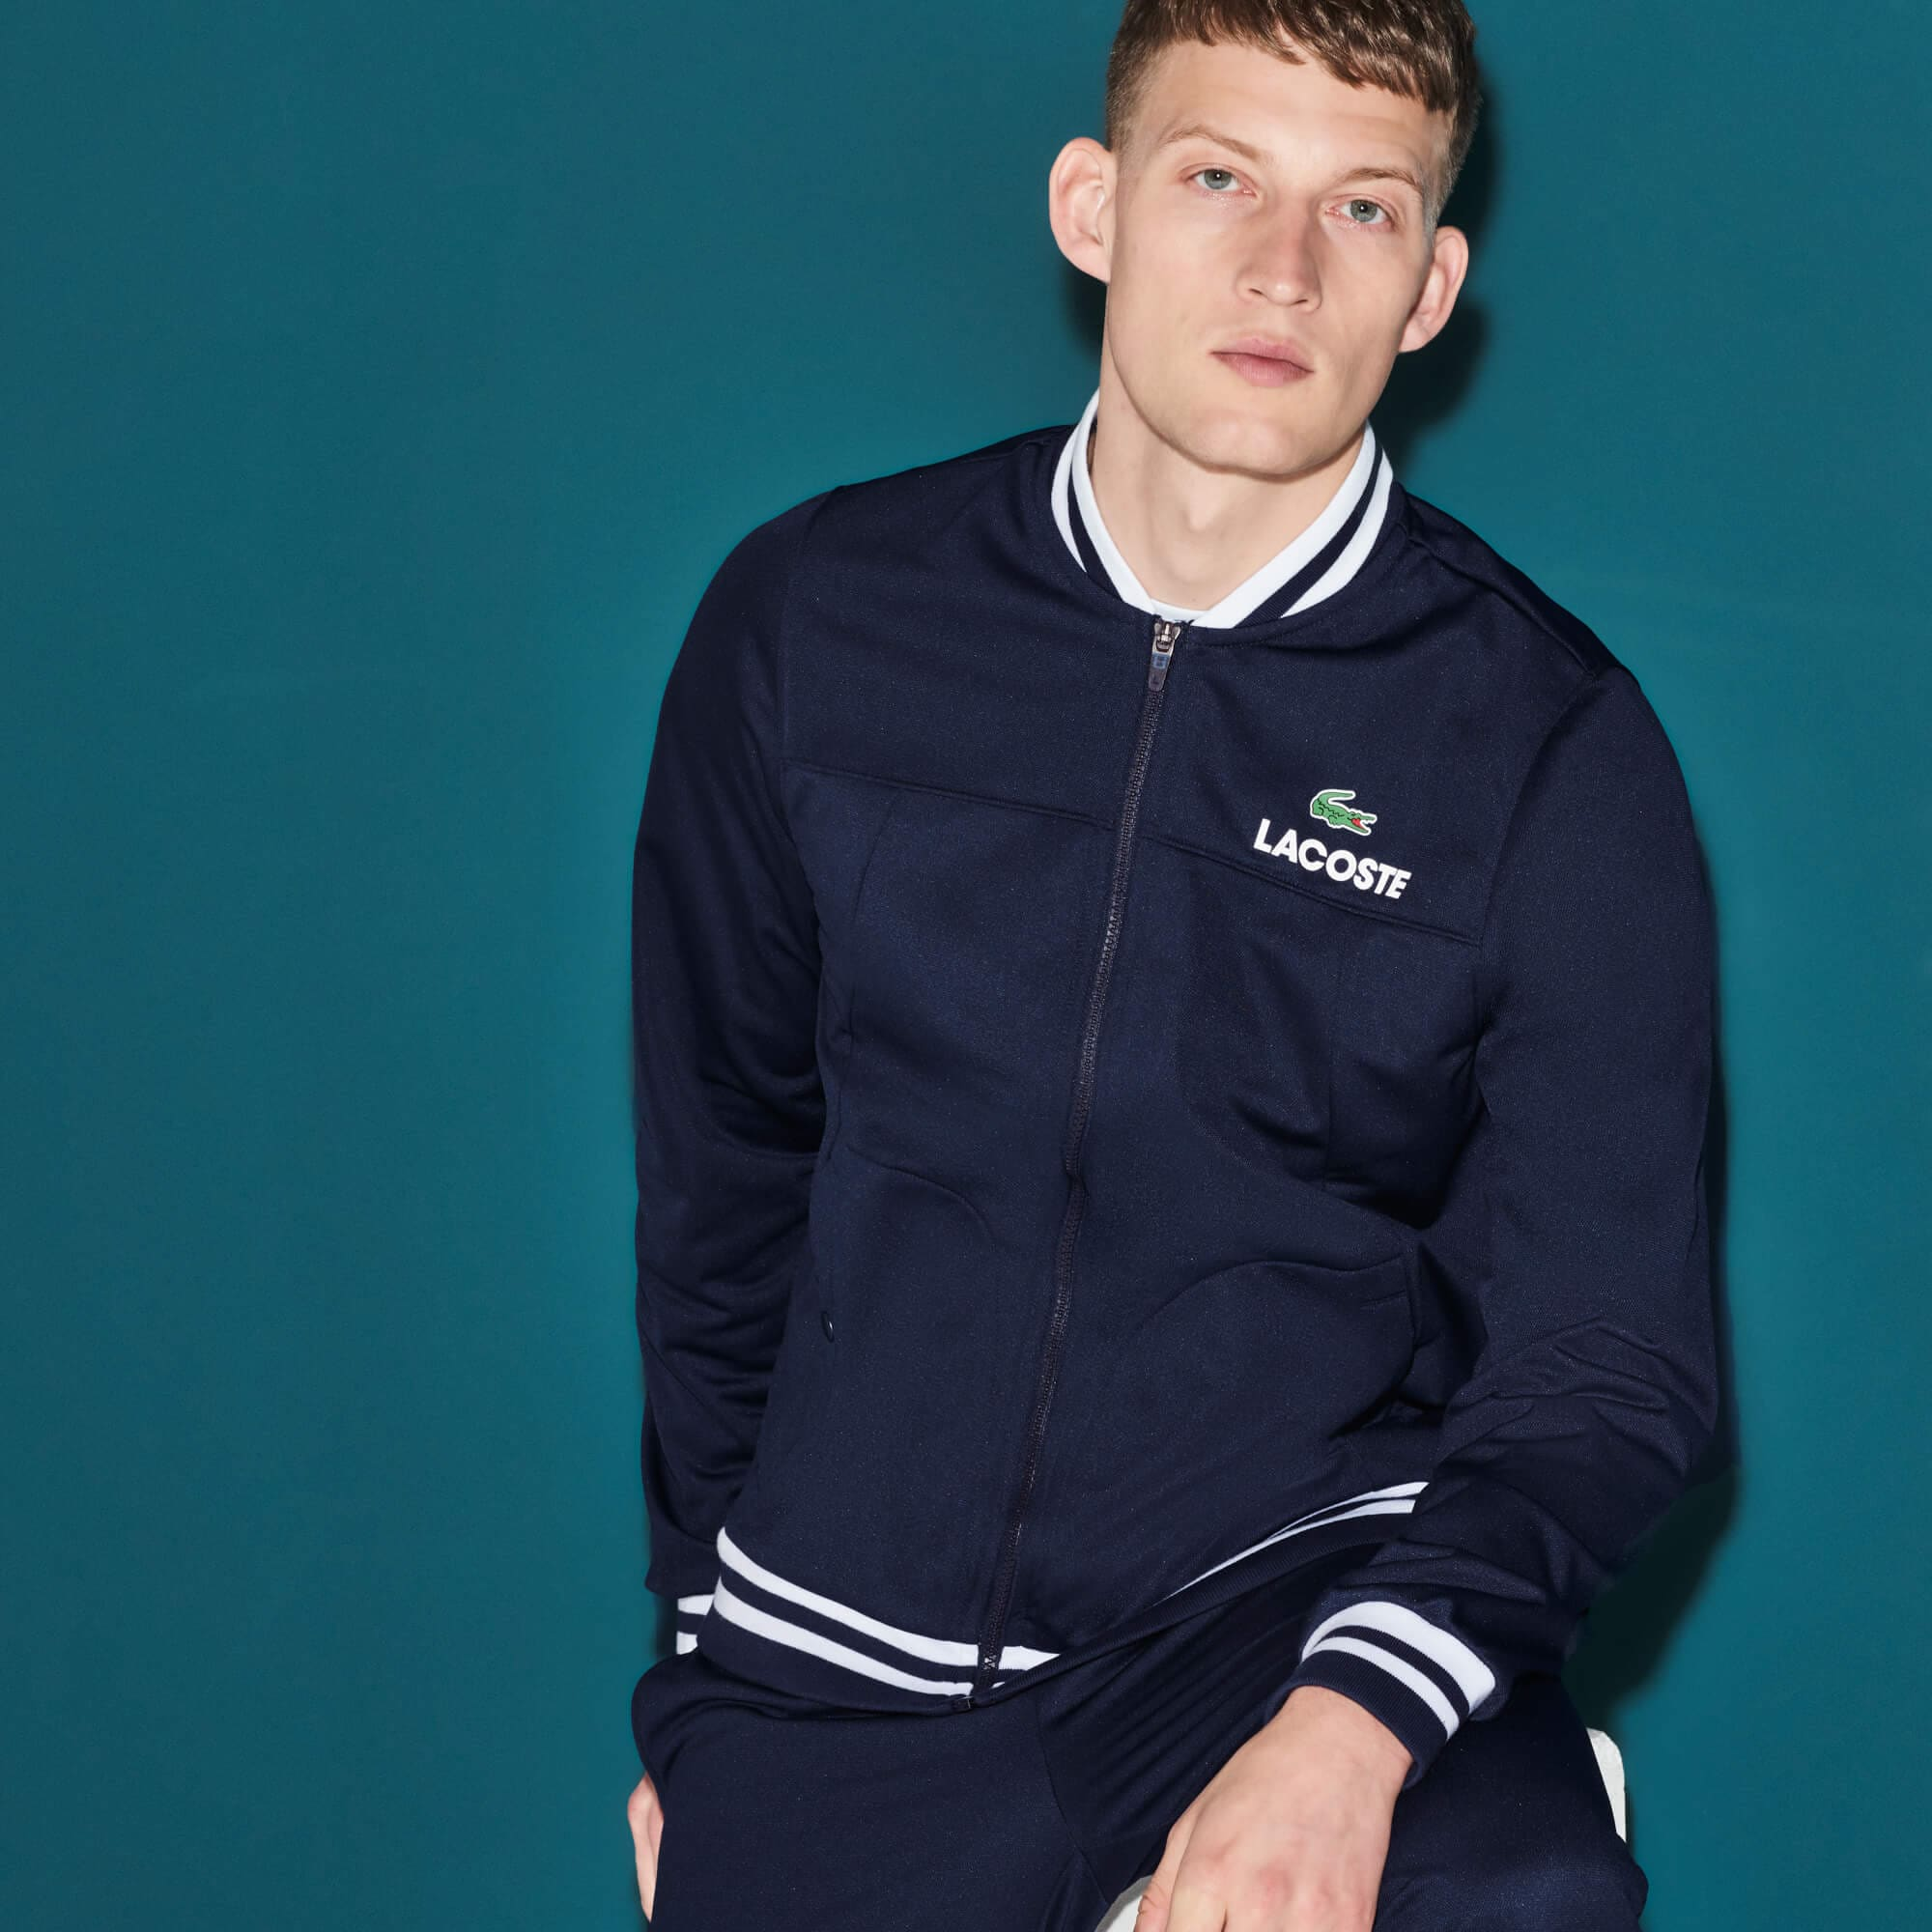 Men's Lacoste SPORT Technical Piqué Zip Tennis Jacket